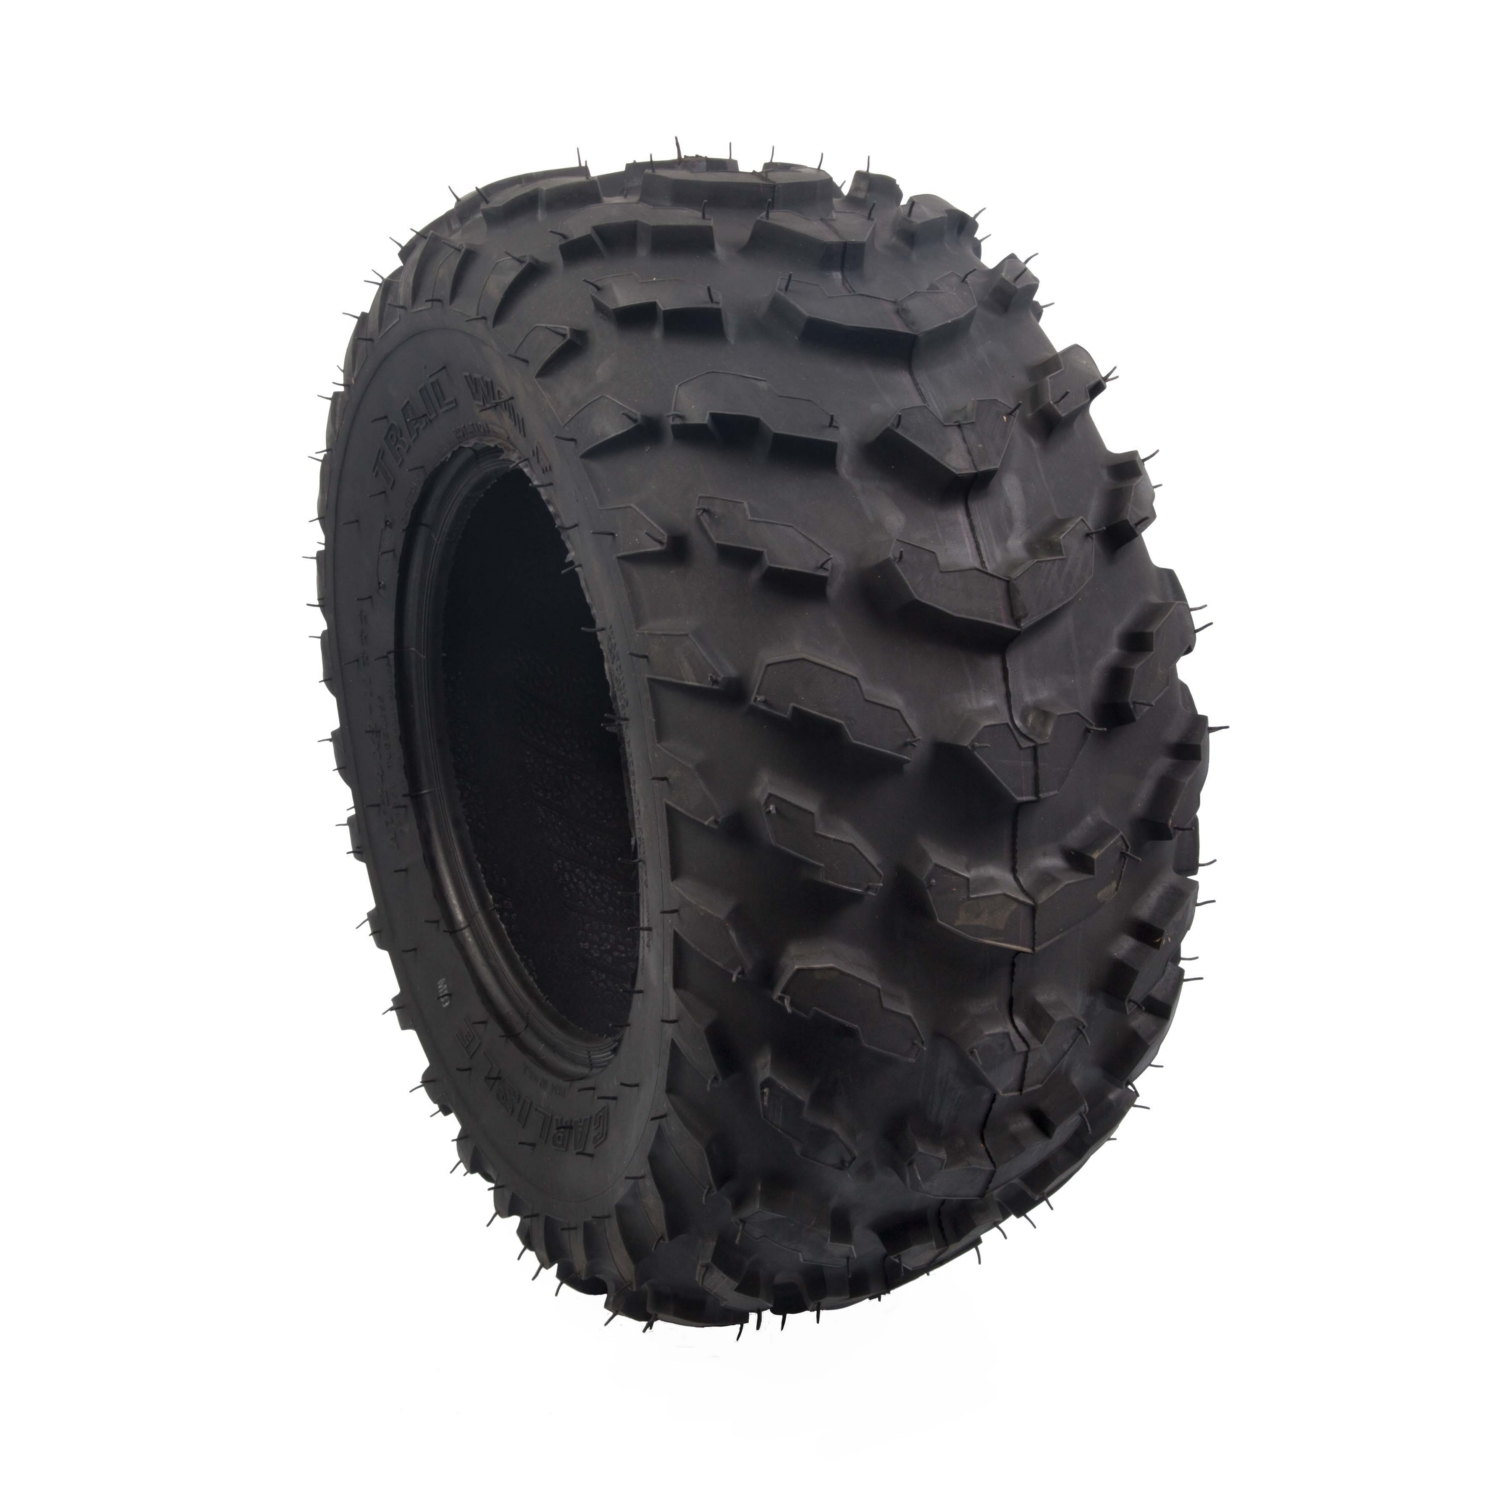 Carlisle Trail Wolf ATV Tire - 19X7-8 1* (Wheel Not Included)